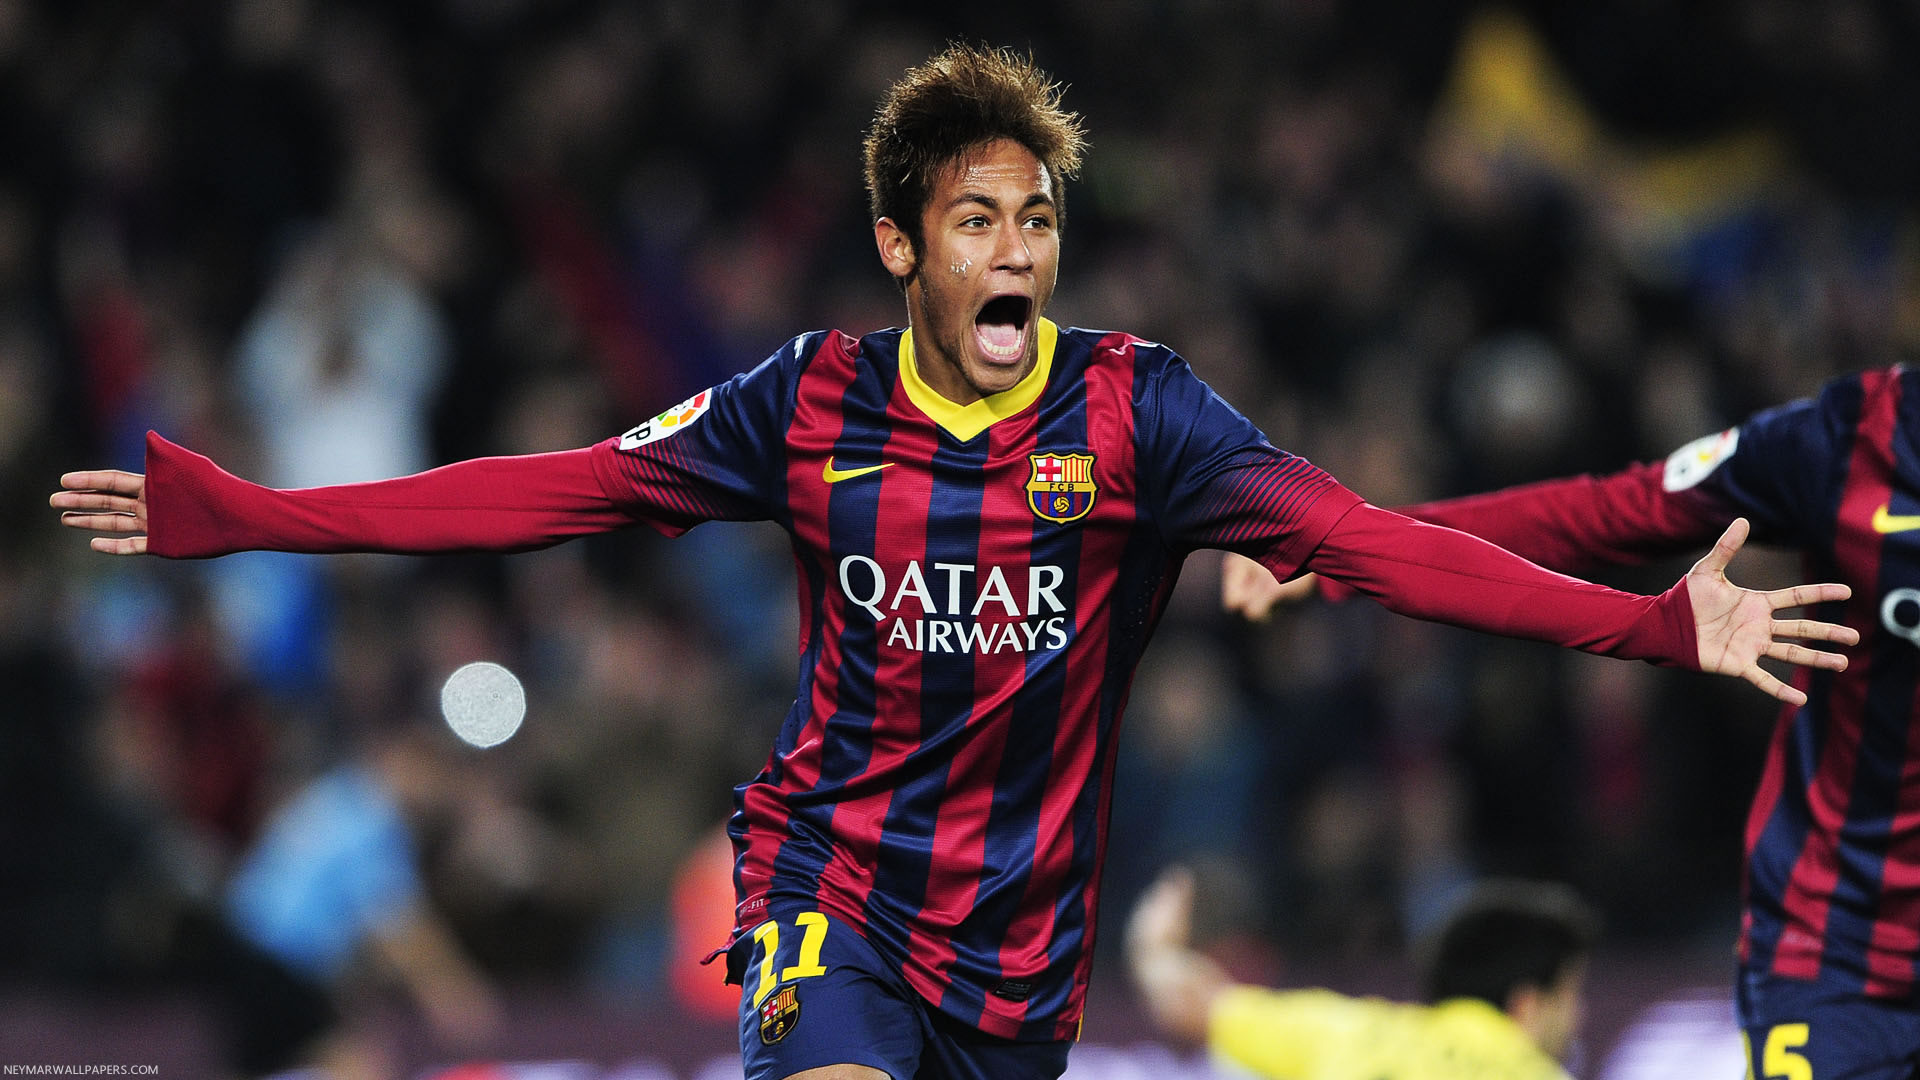 Hd wallpaper neymar - Neymar Screaming Wallpaper